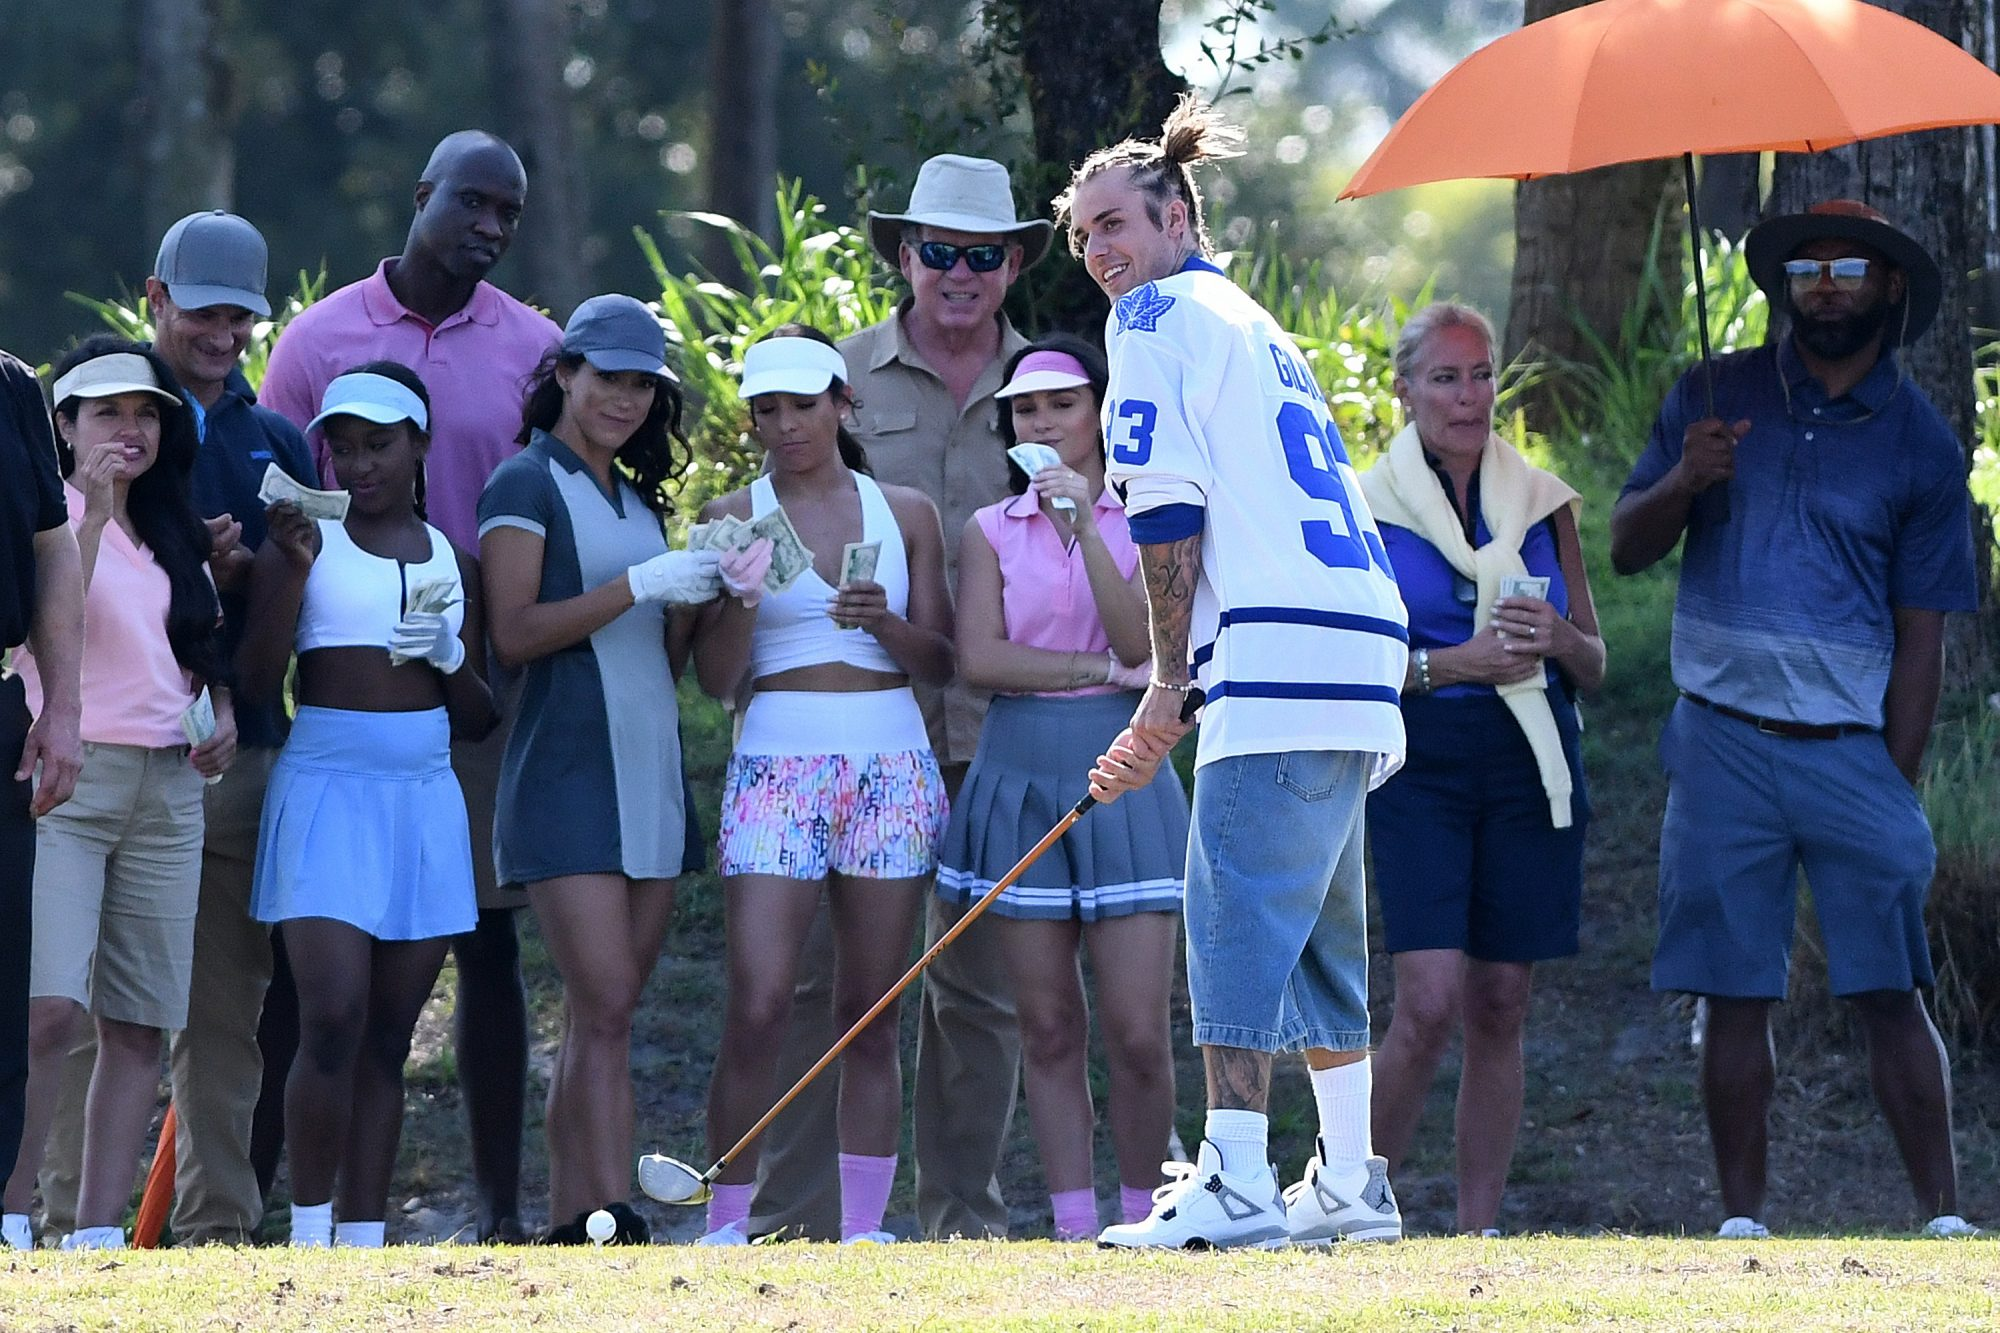 Justin Bieber Plays Golf on the Set of a Music Video in Miami